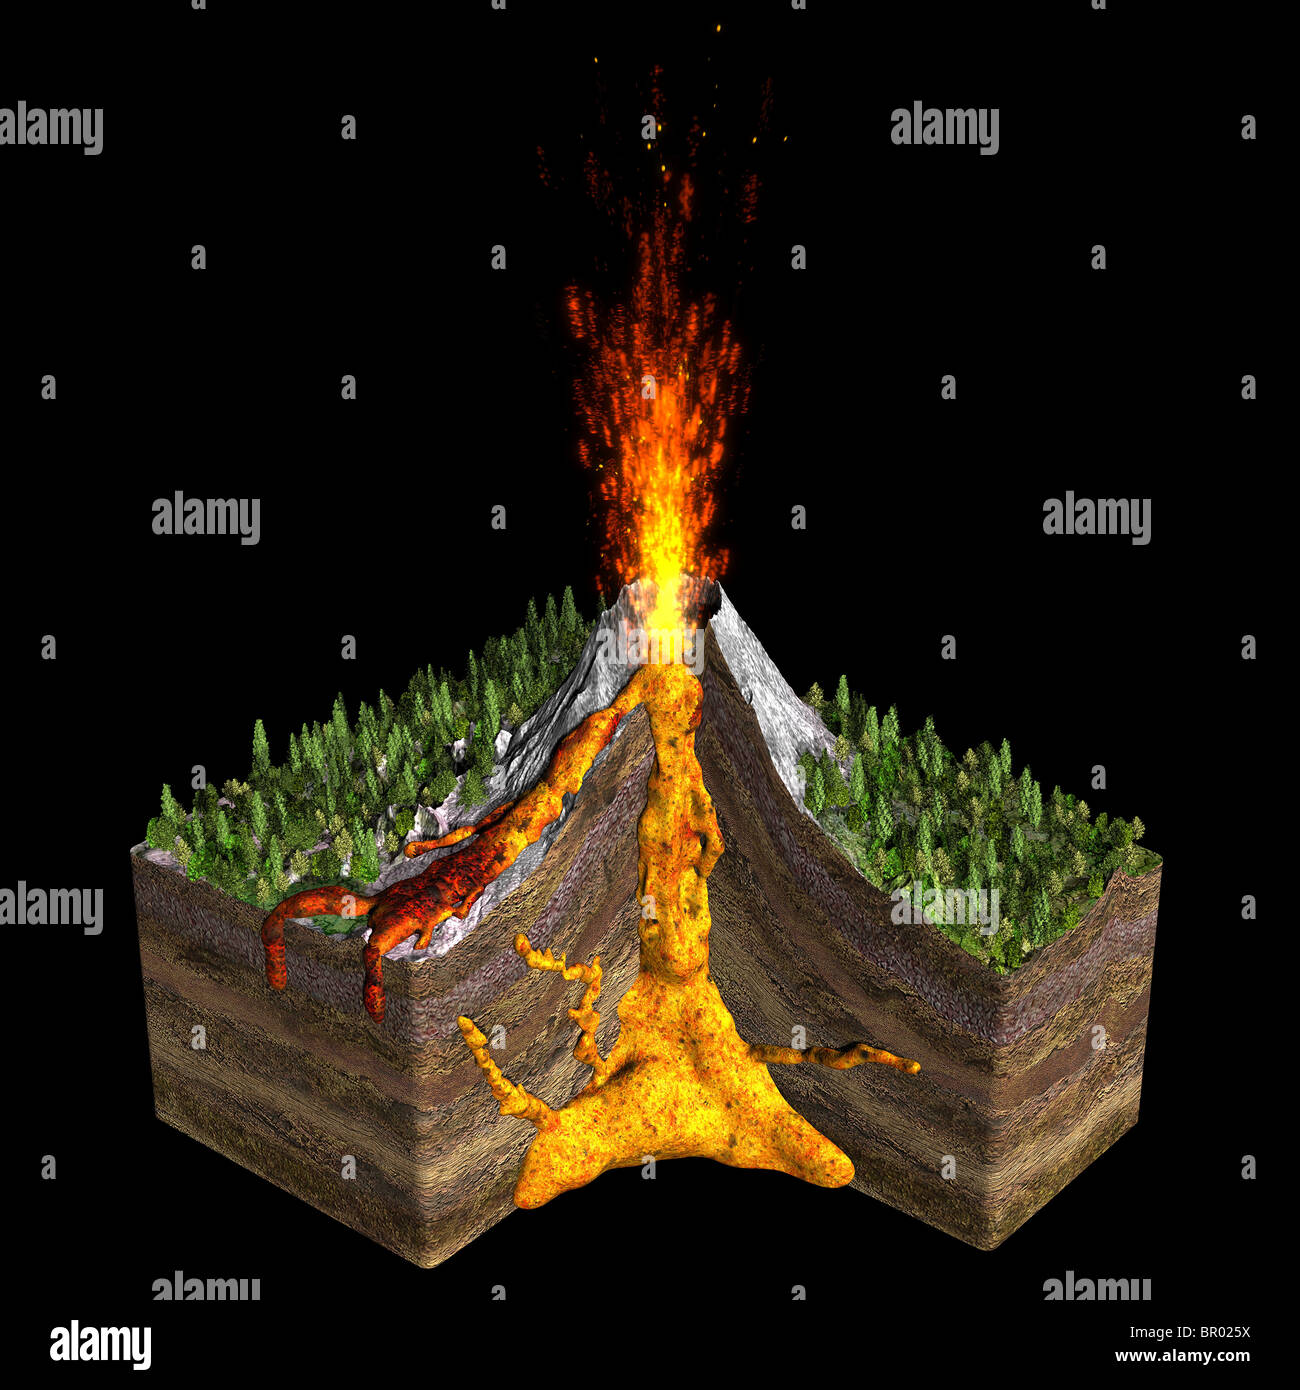 Illustration of a volcano spitting fire. Showing a cross section of the earth with magma chambers. - Stock Image